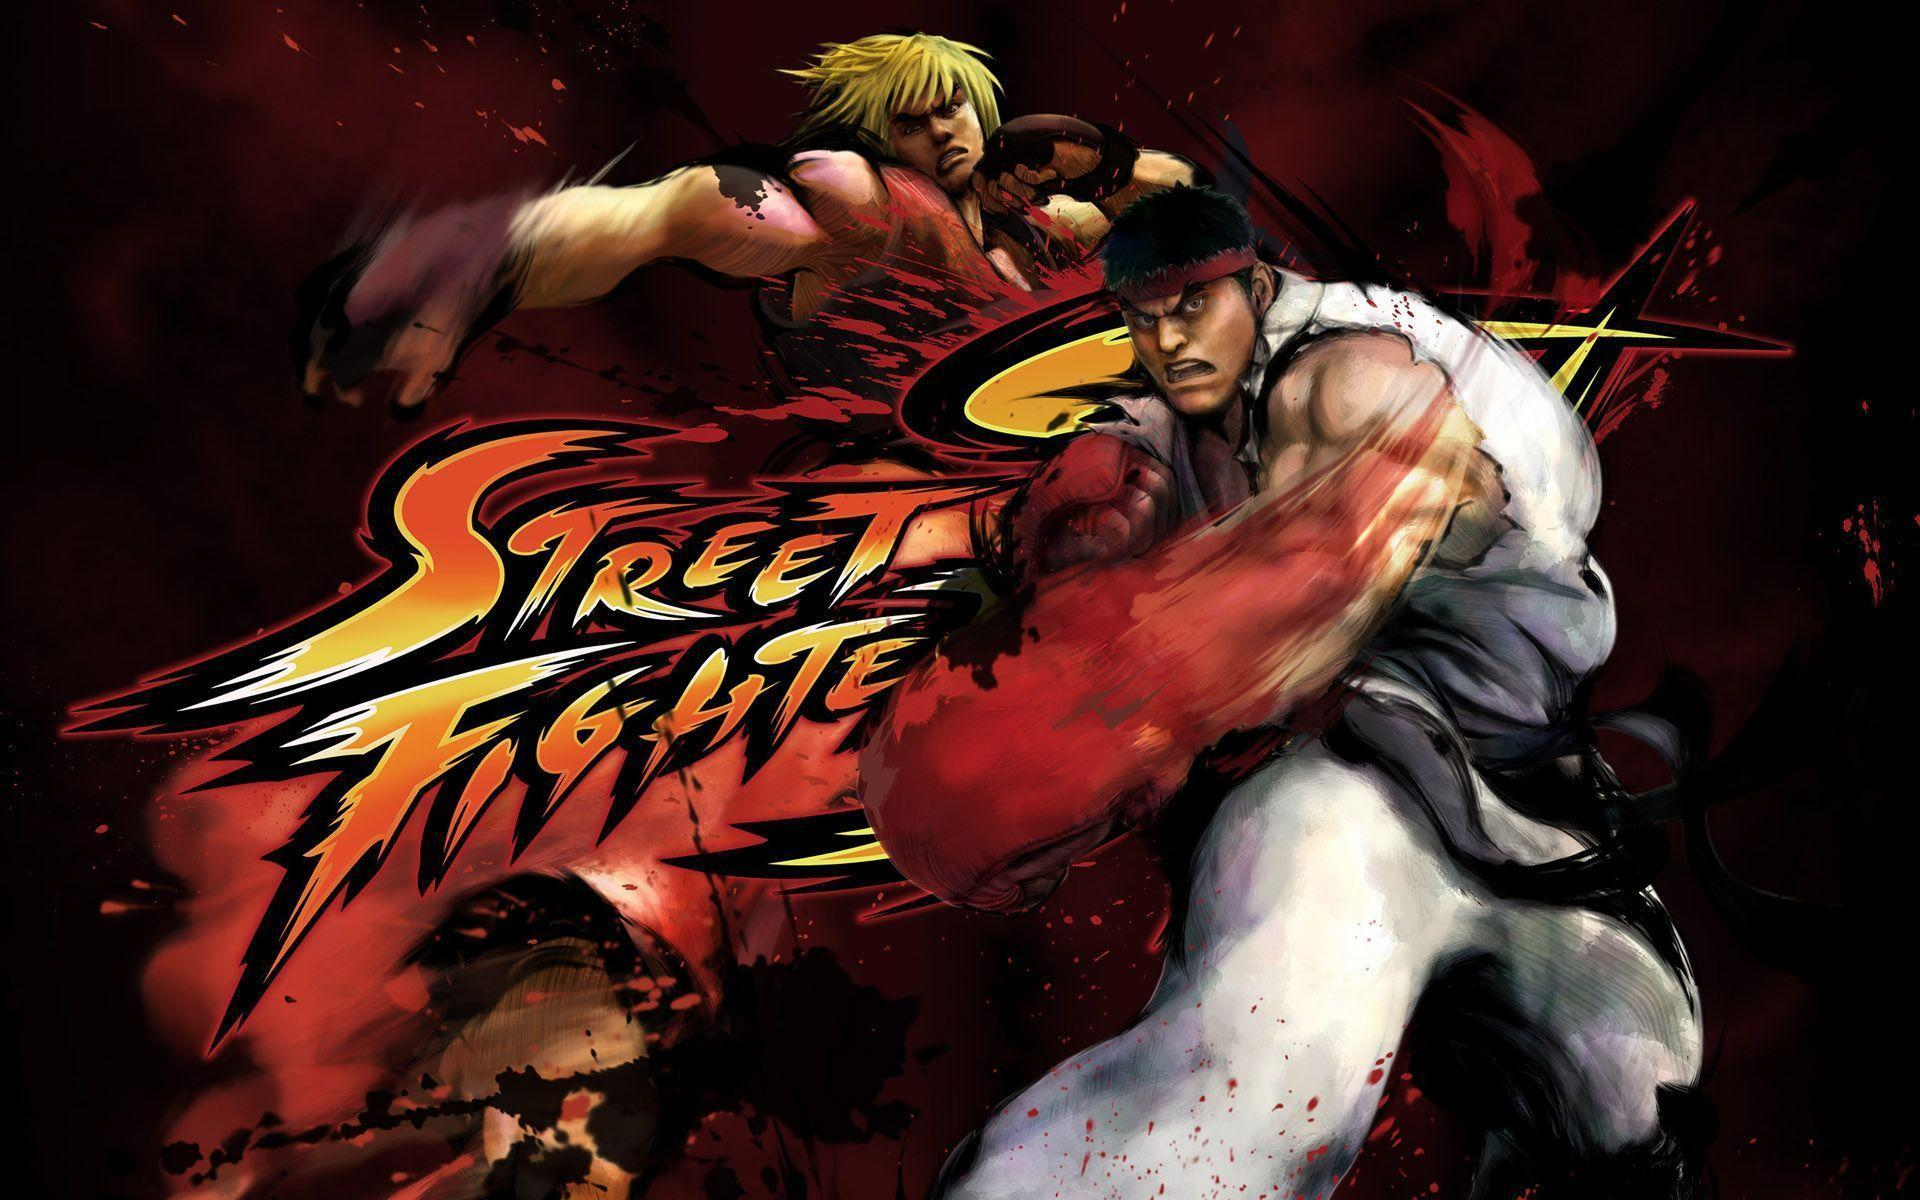 shadowloo street fighter wallpaper - photo #46